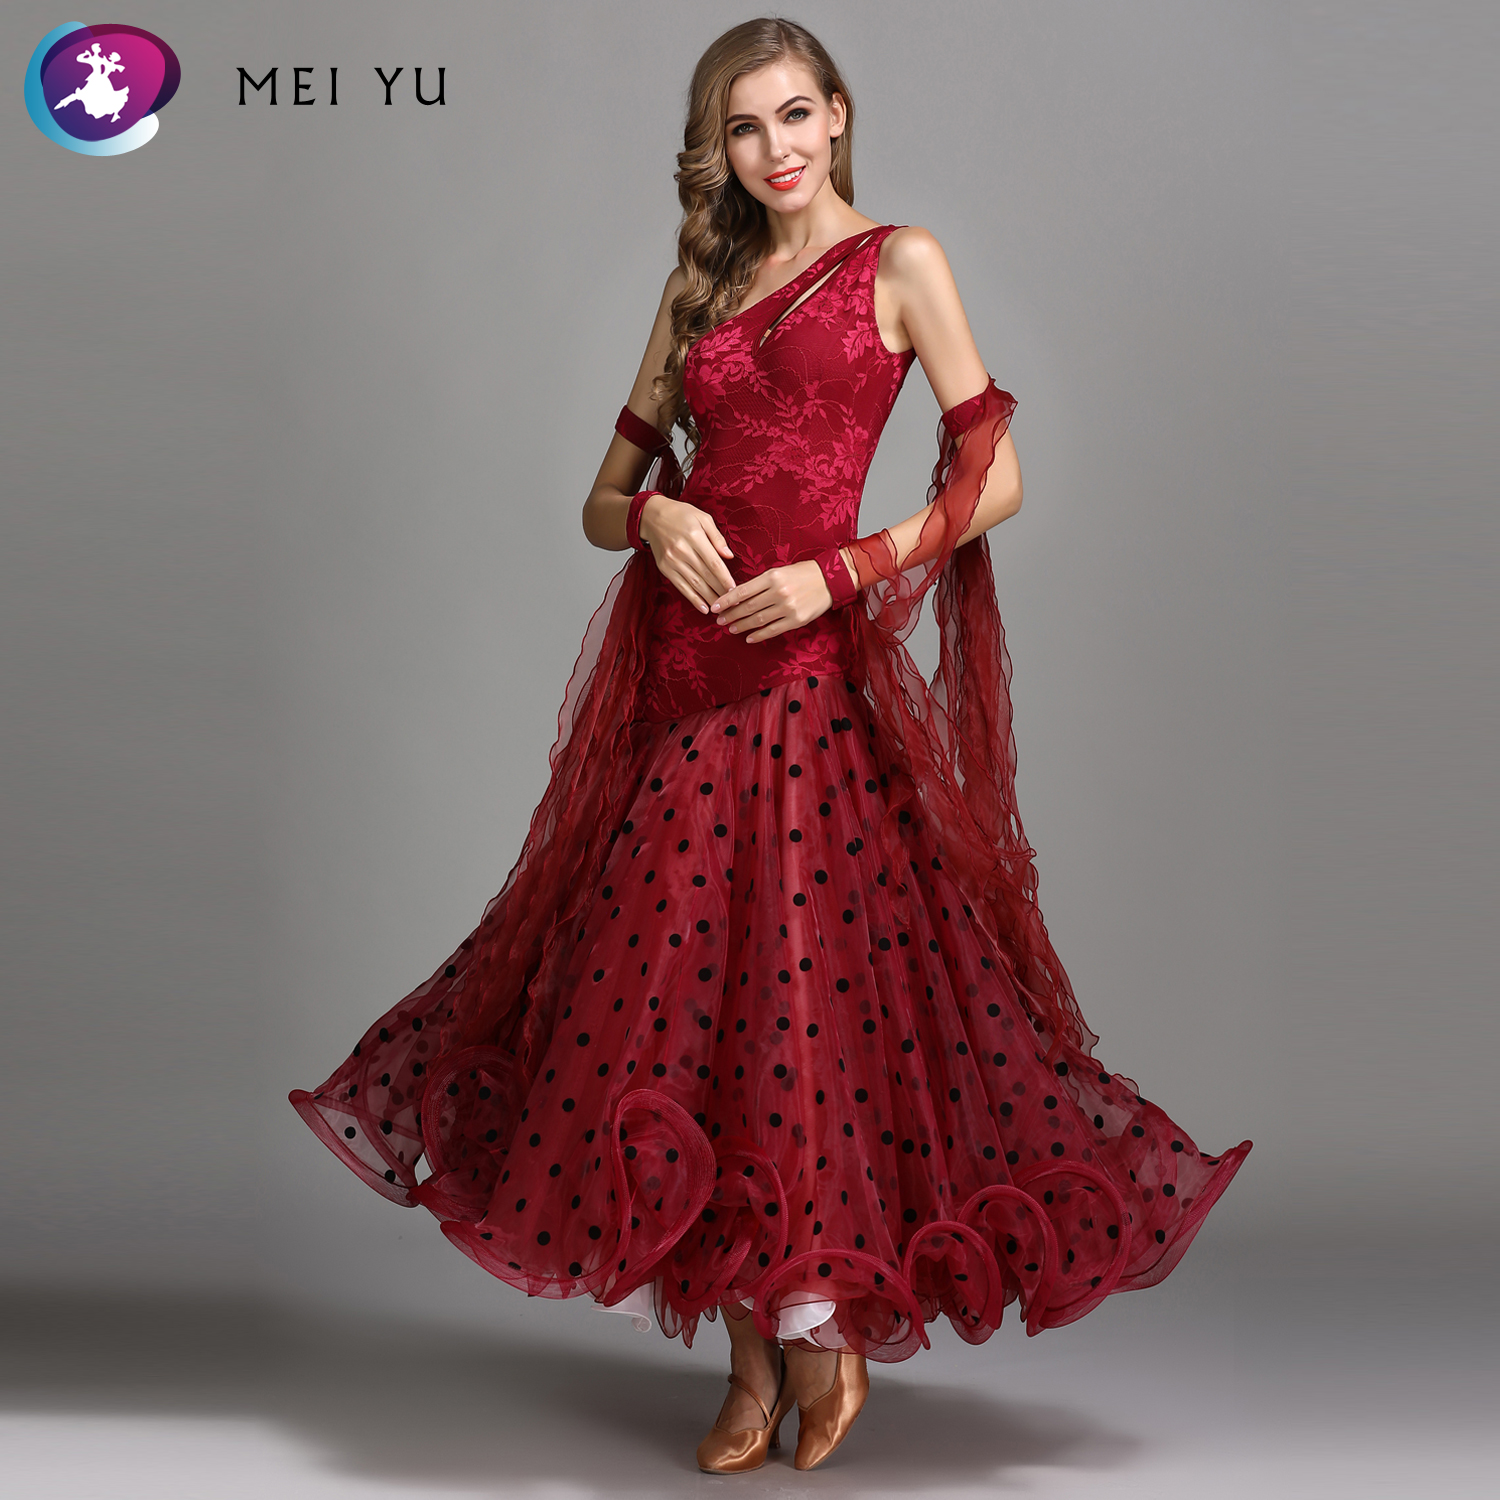 Frugal Mei Yu My784 Modern Dance Costume Women Lady Adult Waltzing Tango Backless Dancing Dress Ballroom Costume Evening Party Dress Stage & Dance Wear